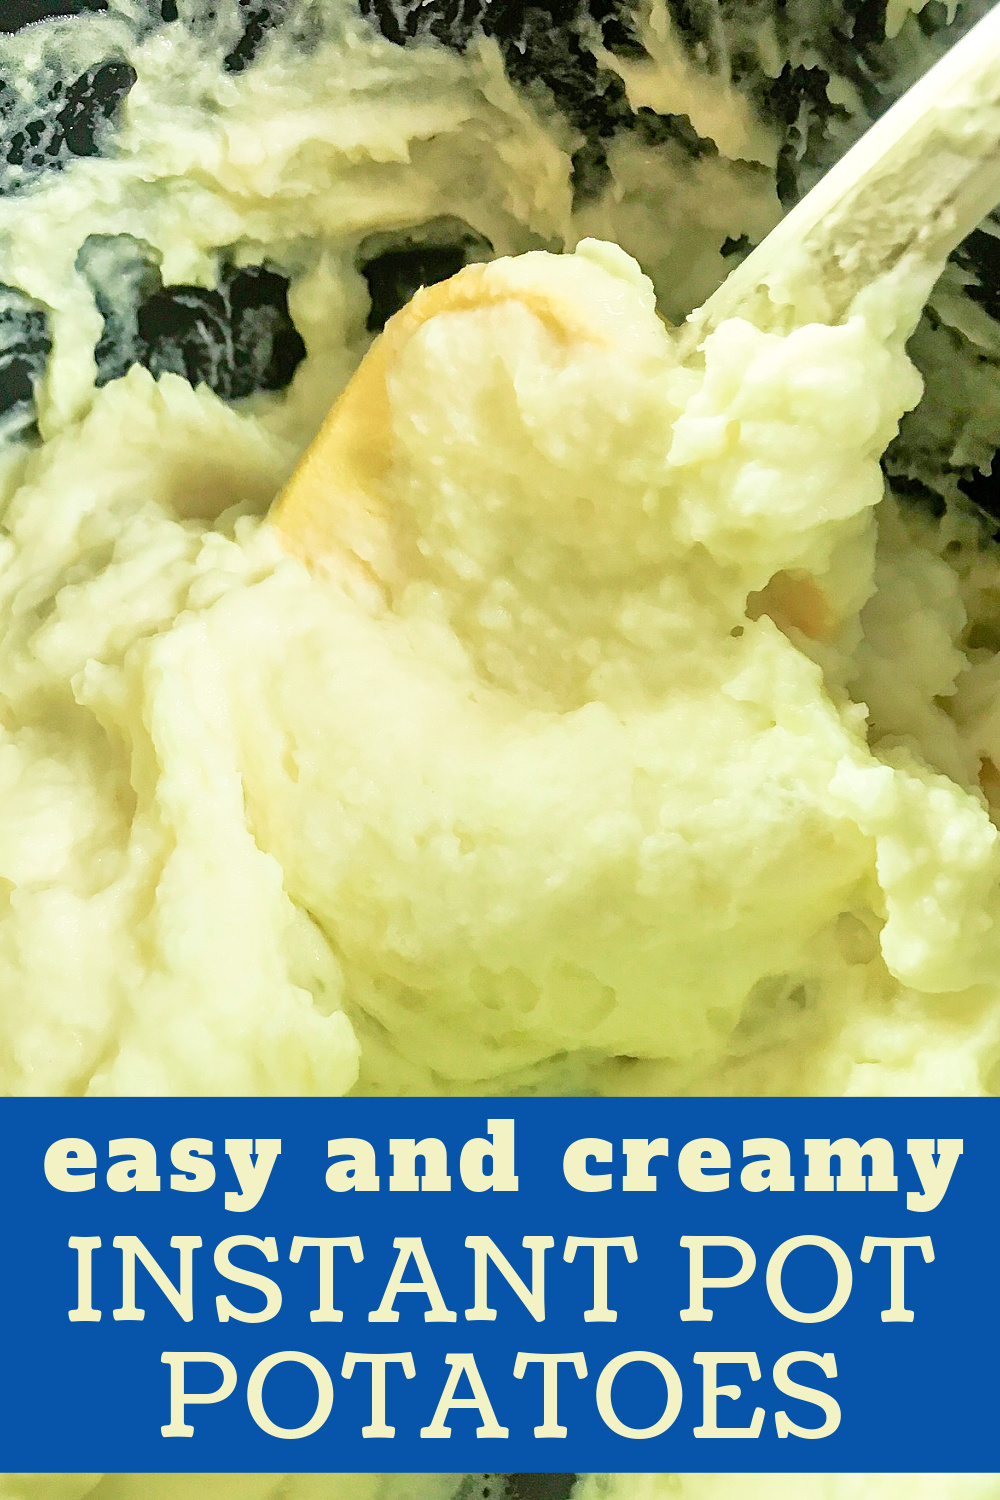 Big batch mashed potatoes made in the Instant Pot.